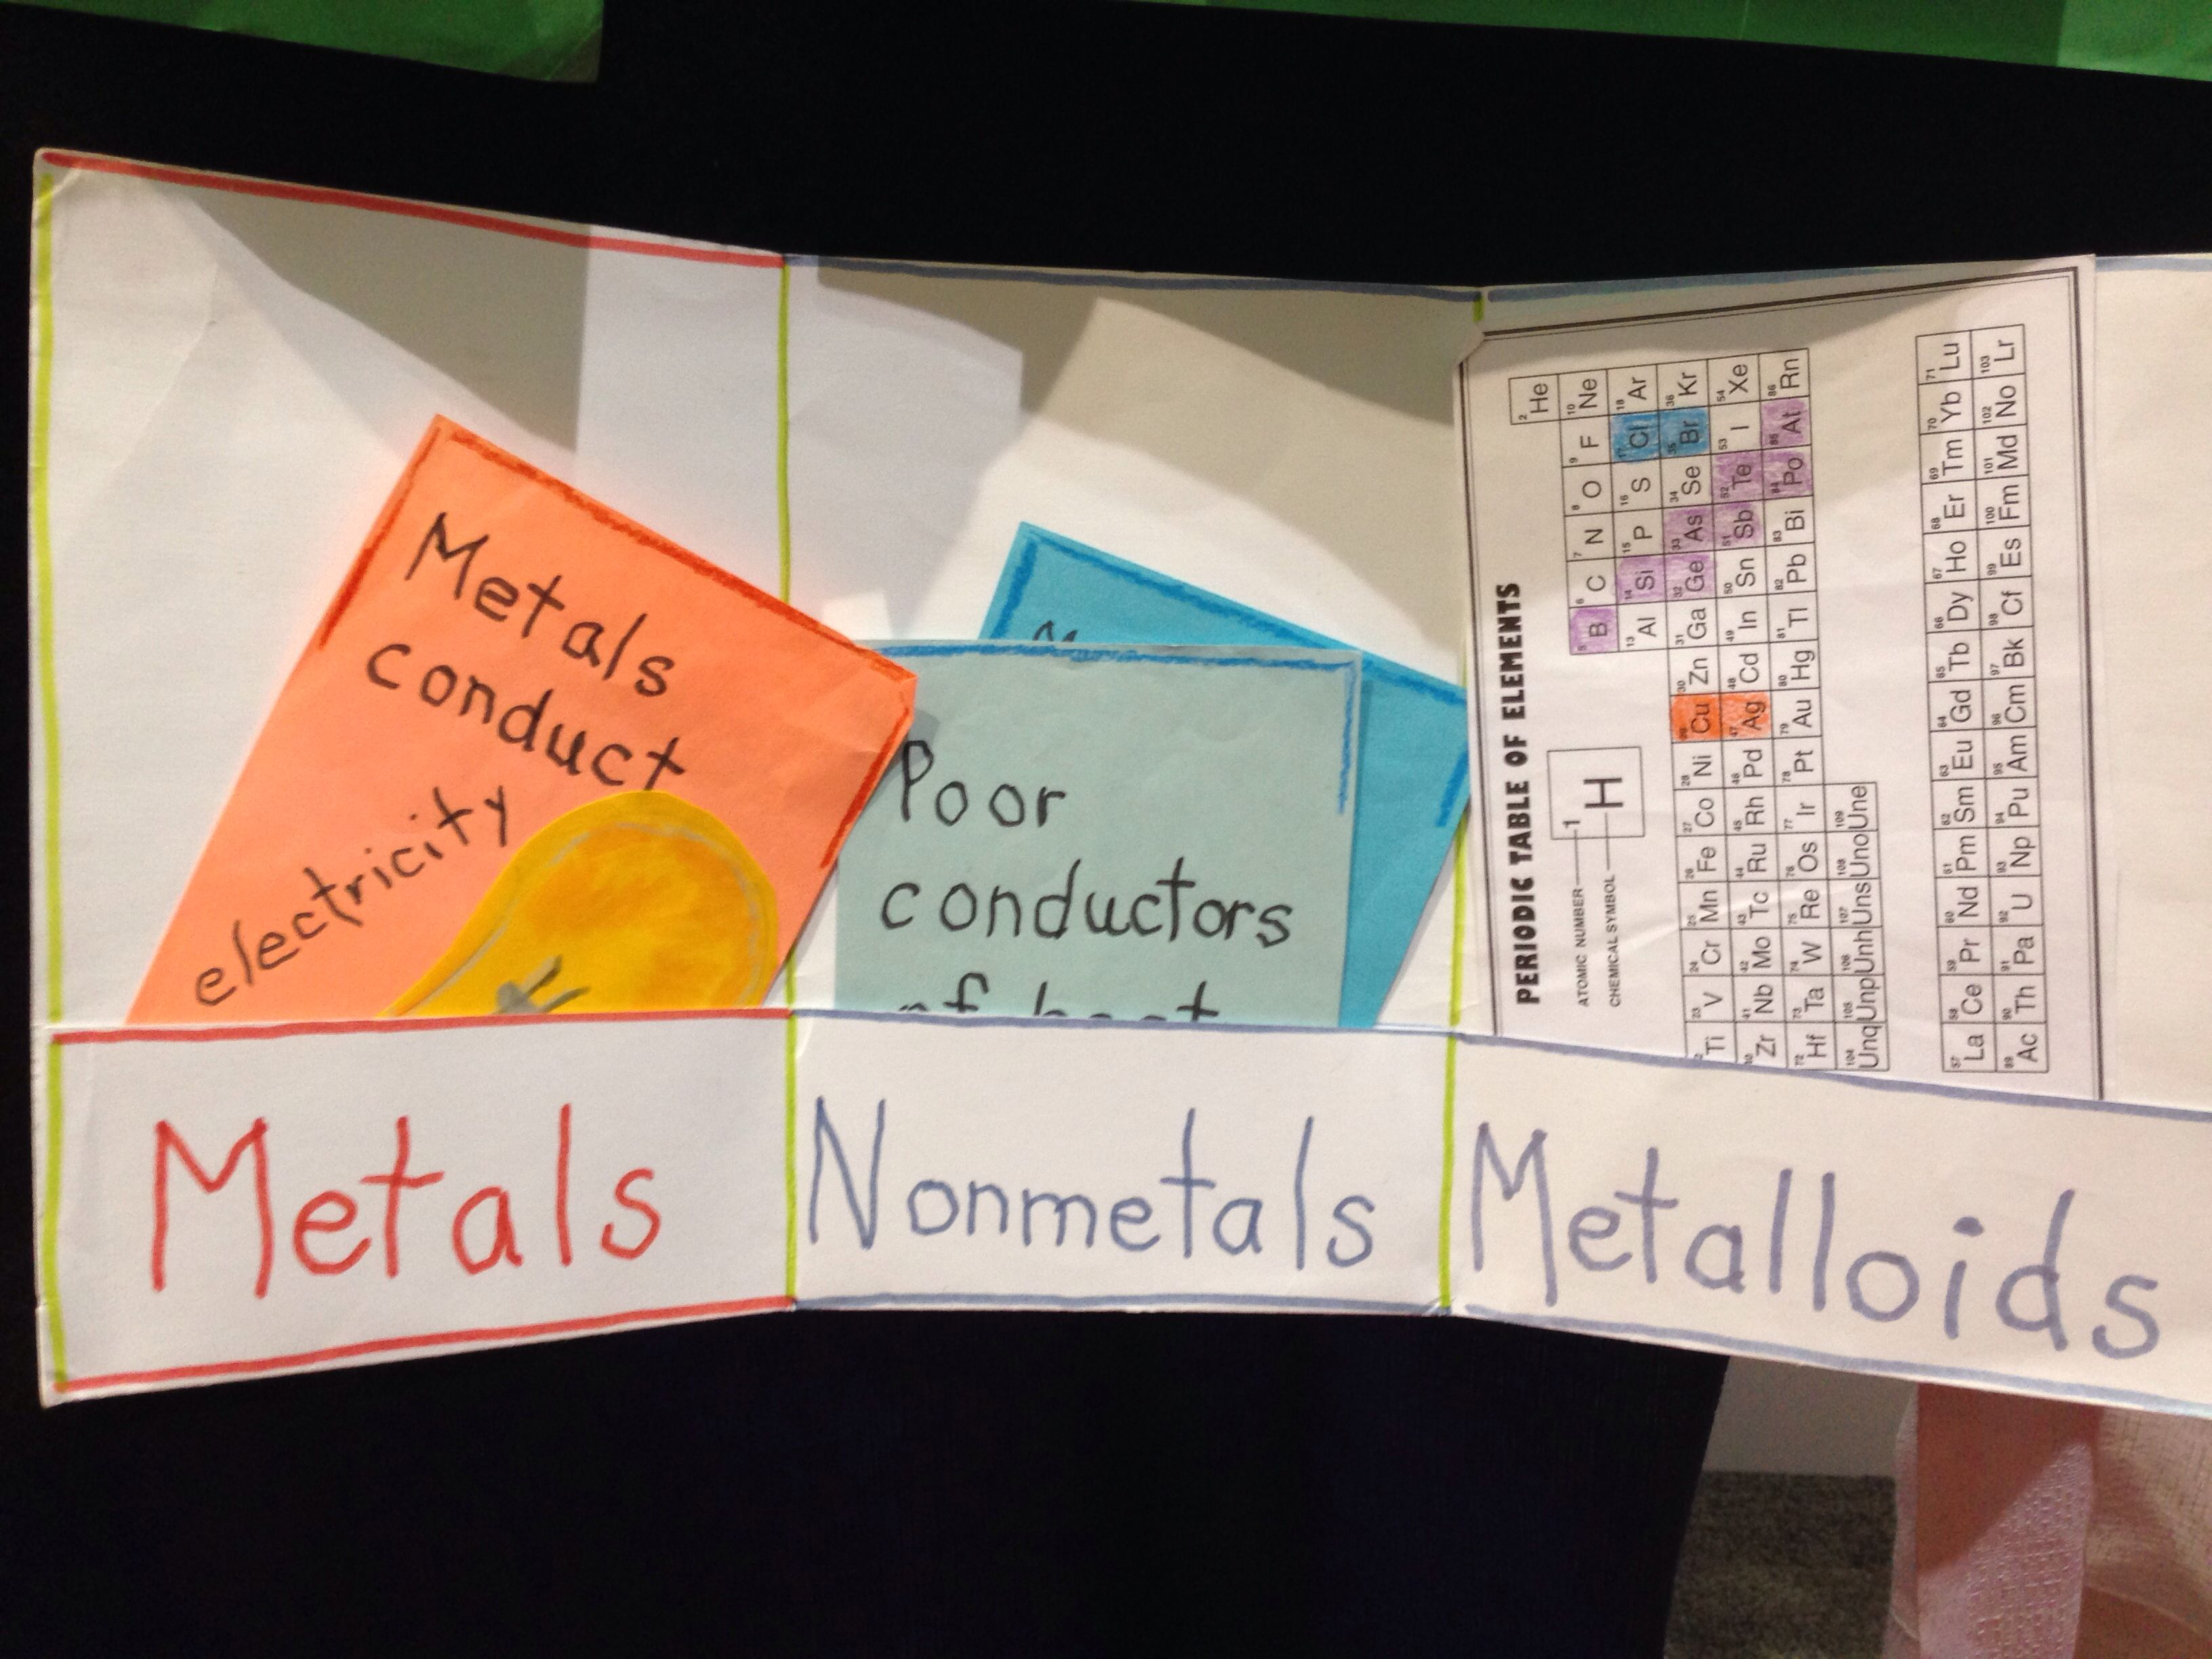 Metals non metals and metalloids card sort foldable science metals non metals and metalloids card sort foldable gamestrikefo Image collections